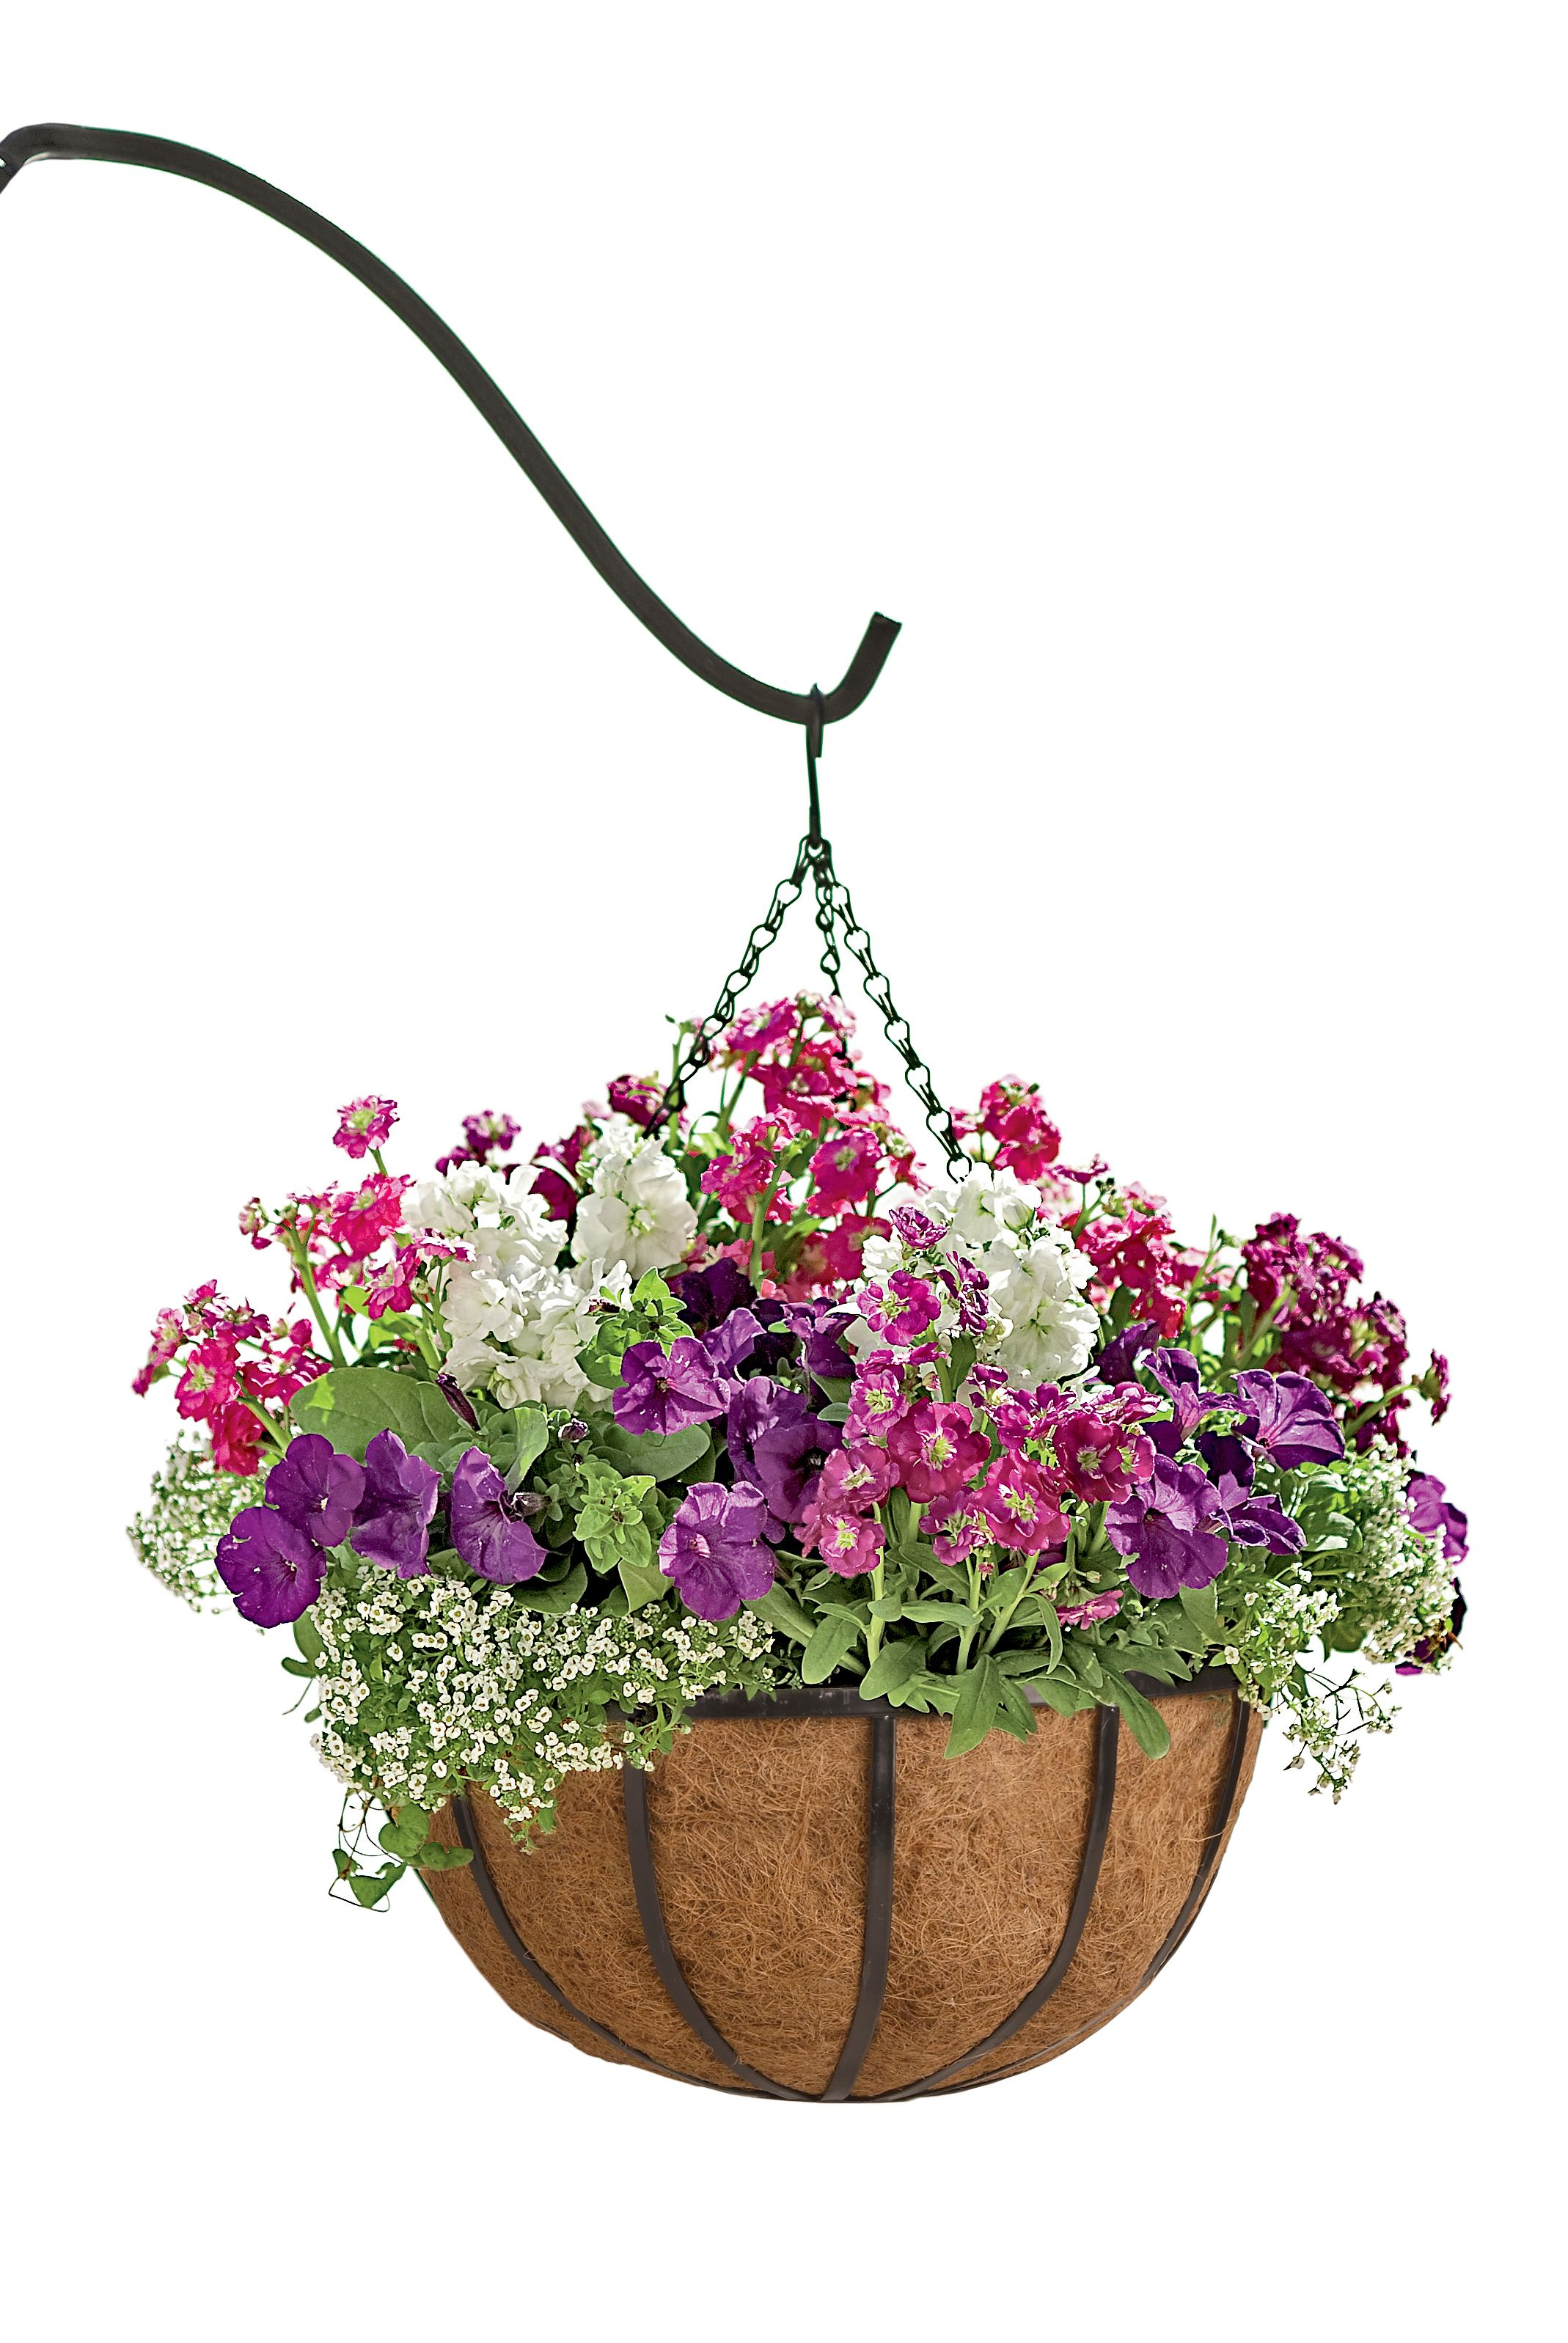 Flower Baskets Photos : Hanging flower baskets